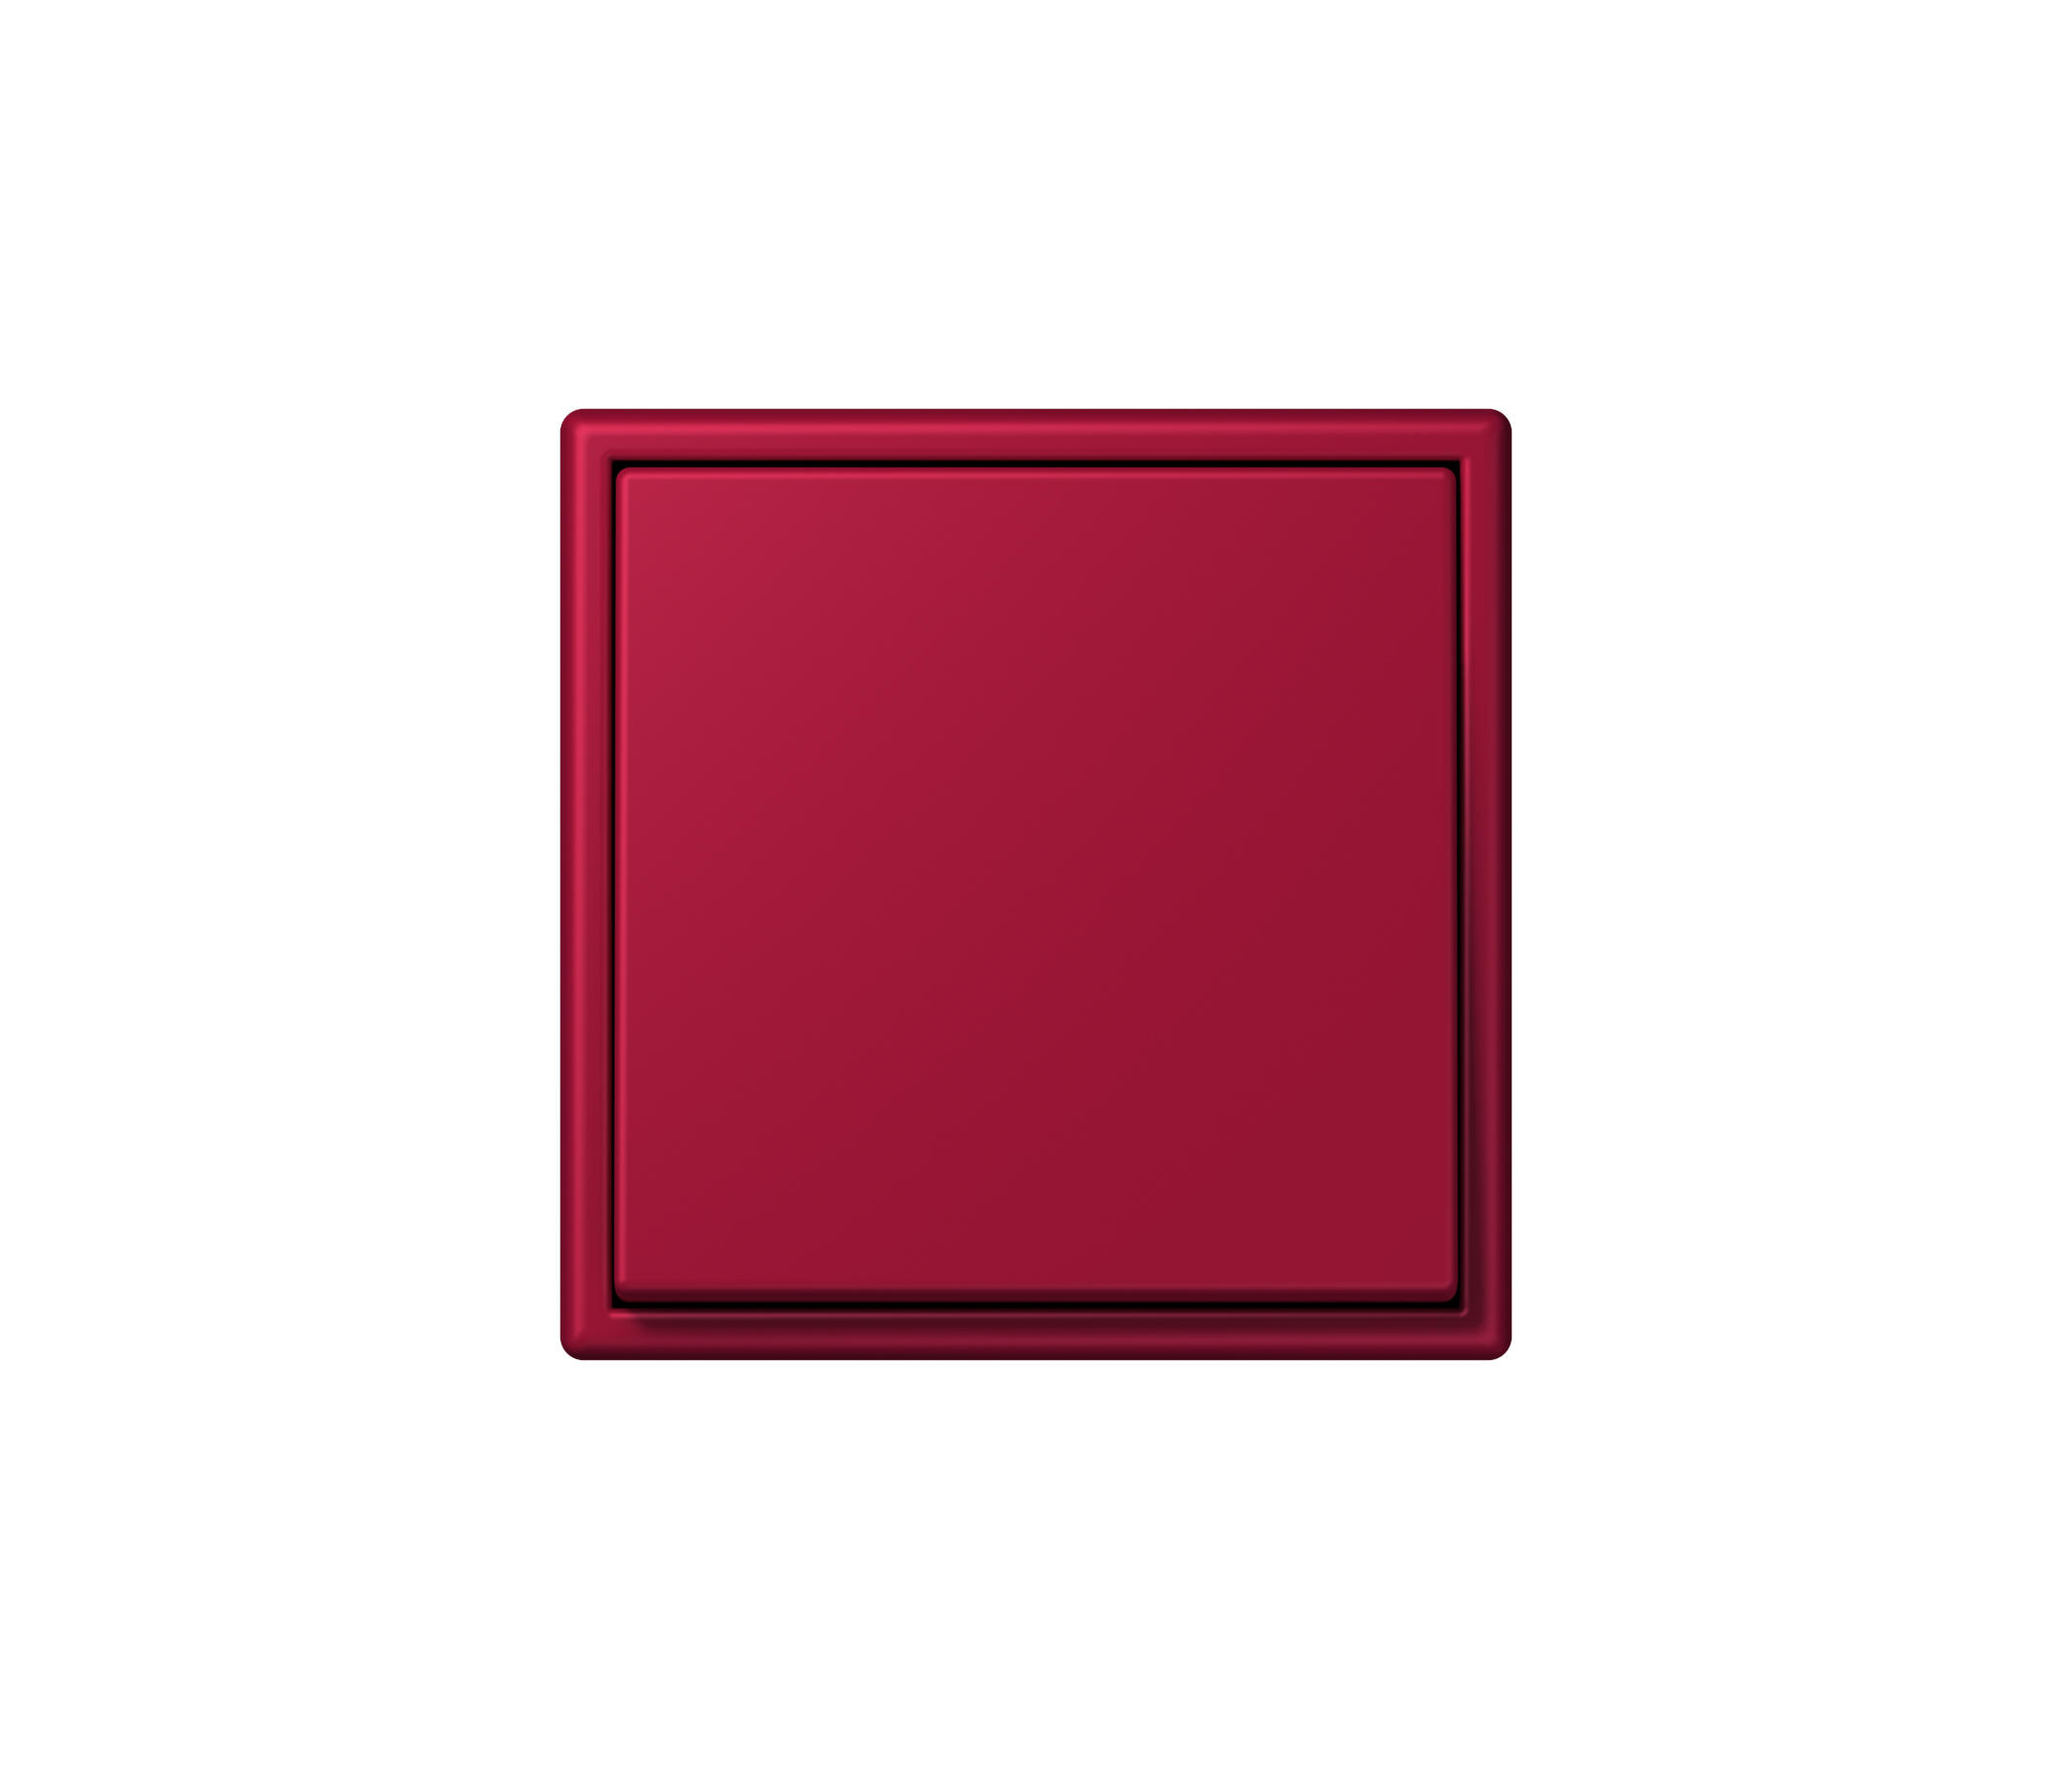 LS 990 in Les Couleurs® Le Corbusier Schalter 32100 rouge carmin by JUNG    Two 23227ec9566